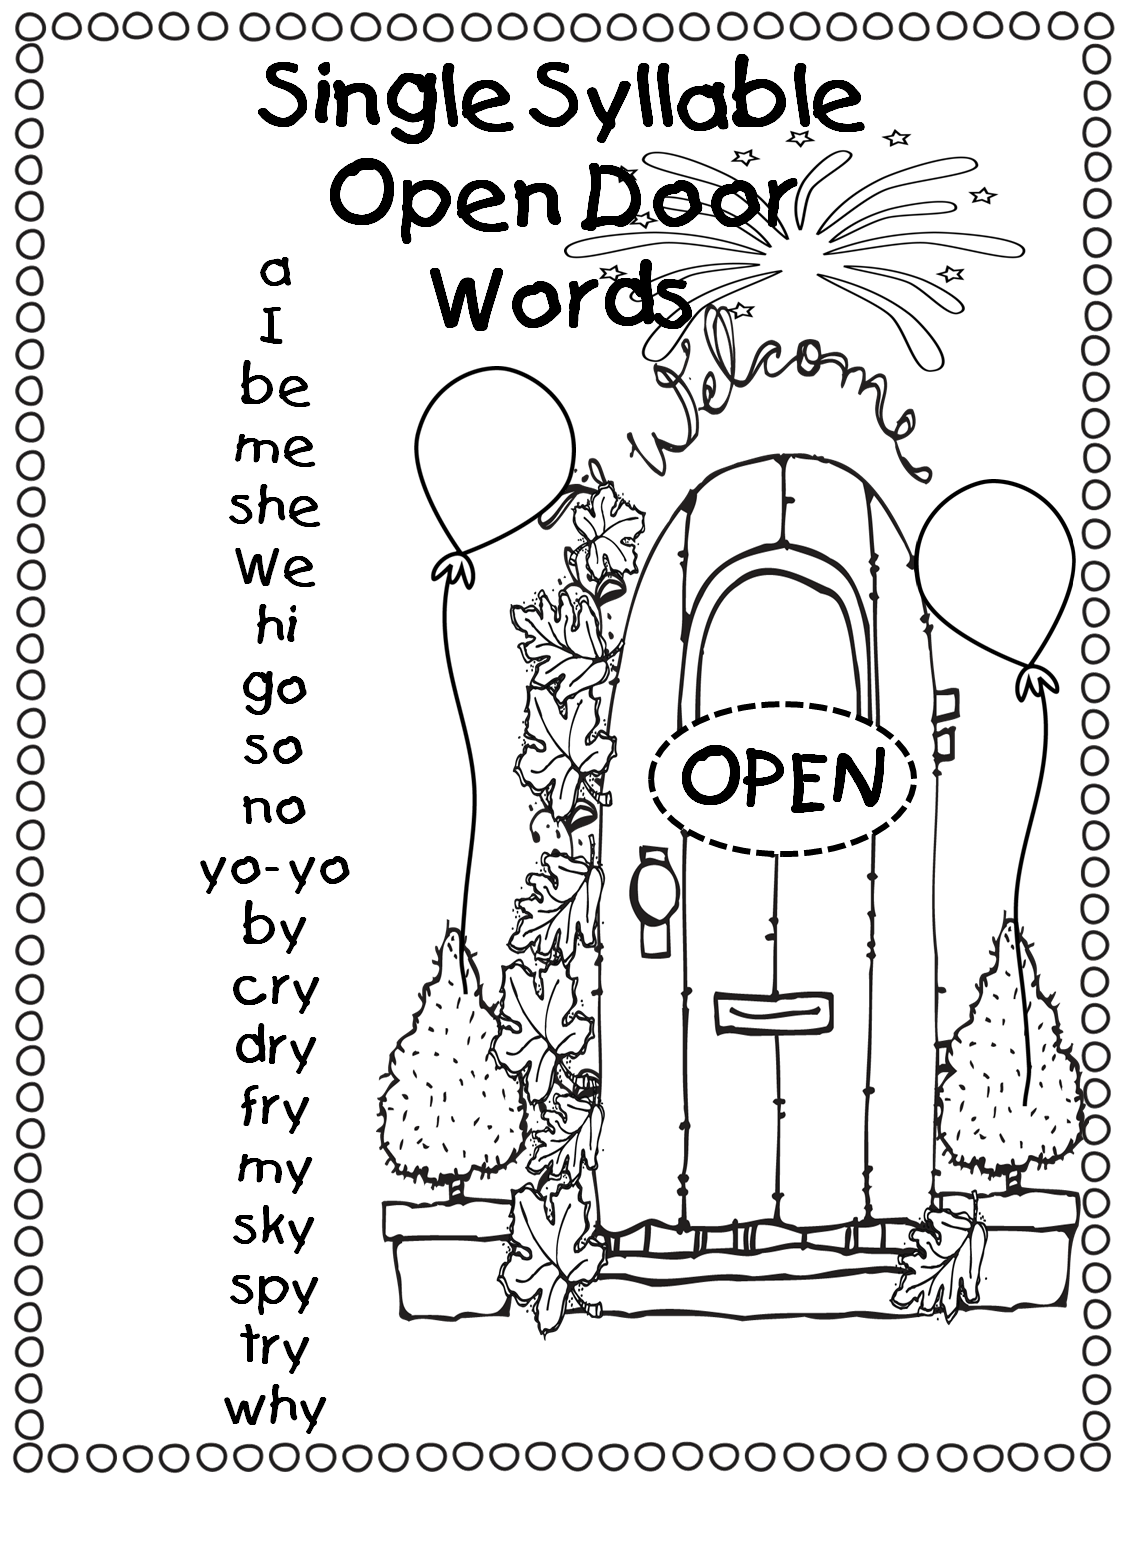 Single Syllable Open Door Words Open Vowel Words